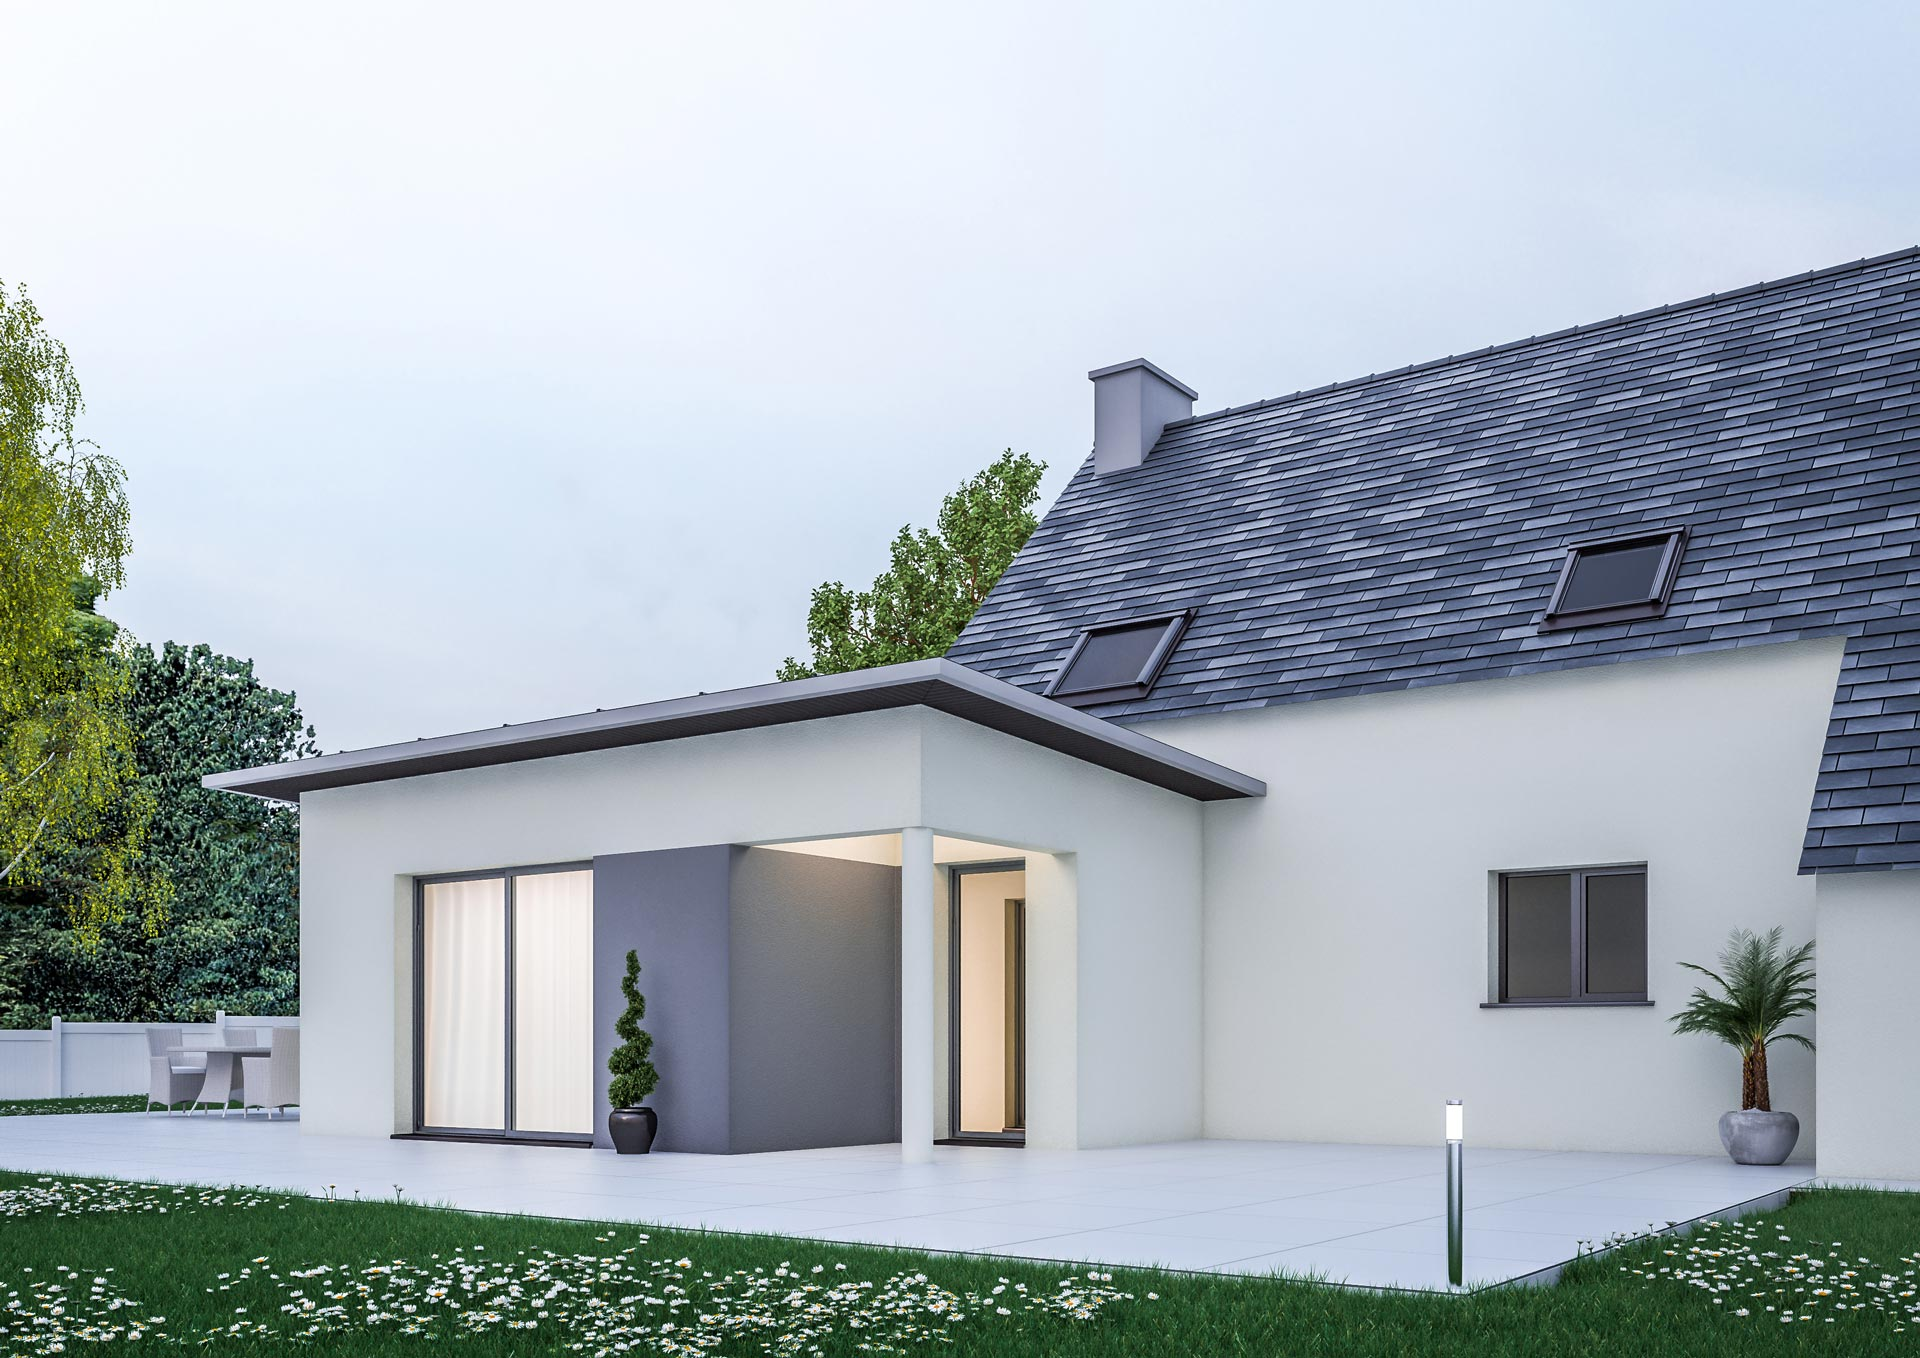 Extension Maison Cube Modele Shine With Modele Facade Maison